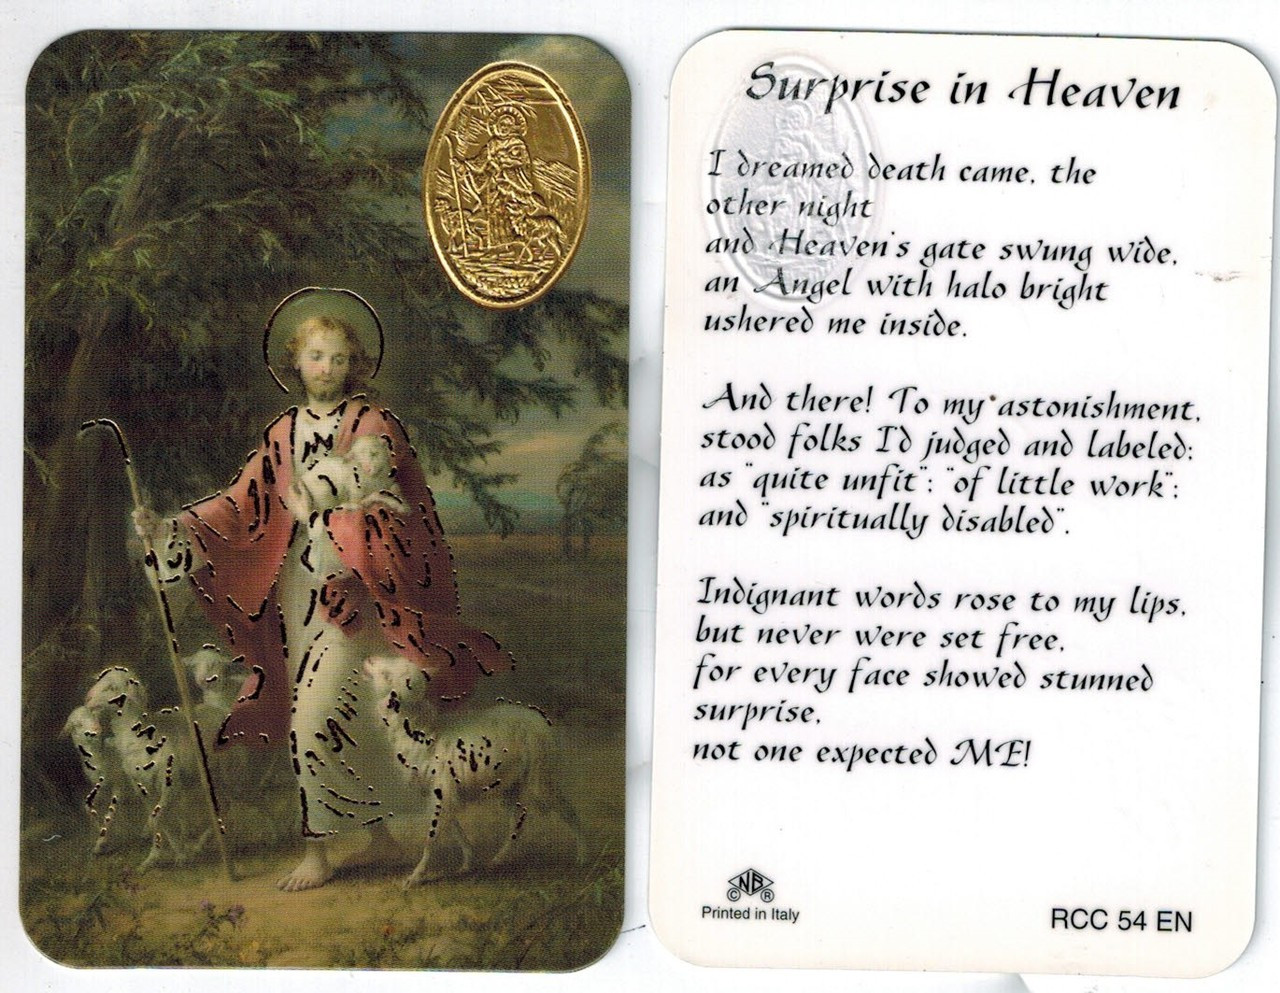 Surprise in Heaven with Jesus, Good Shepherd, Image and Medal